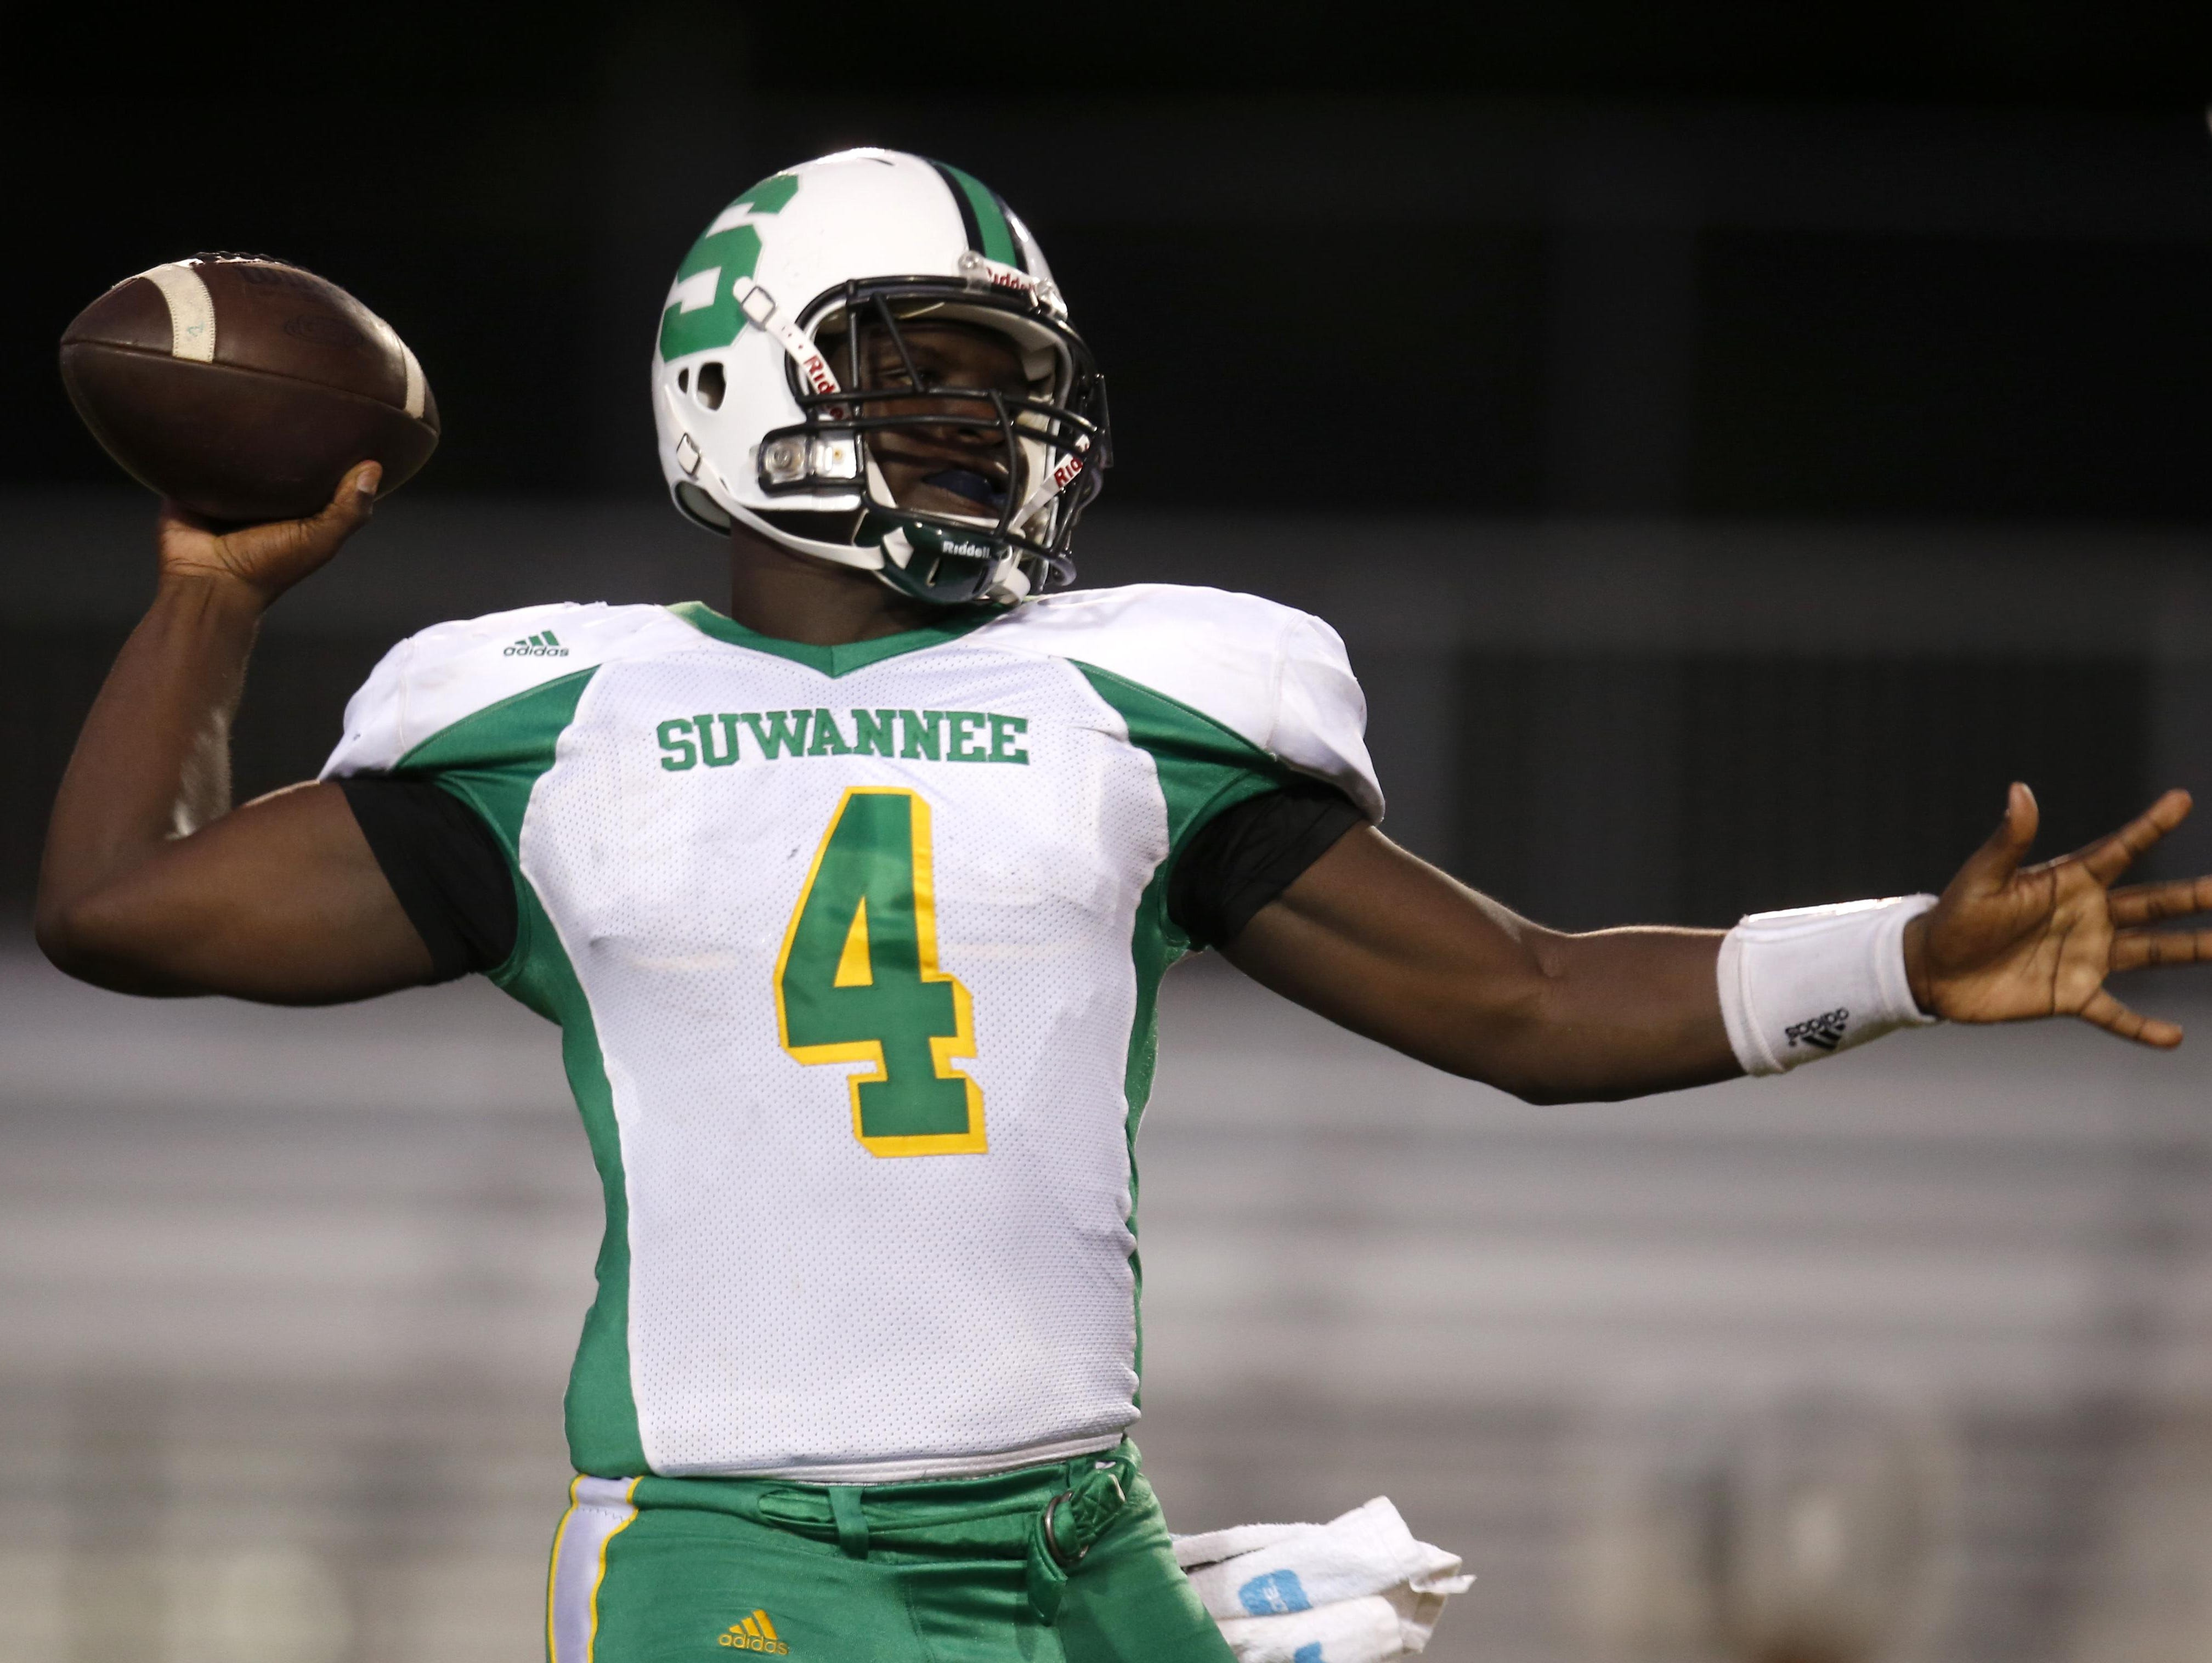 Suwannee's Steven Anderson throws the ball against Leon during their game at Cox Stadium in the preseason.